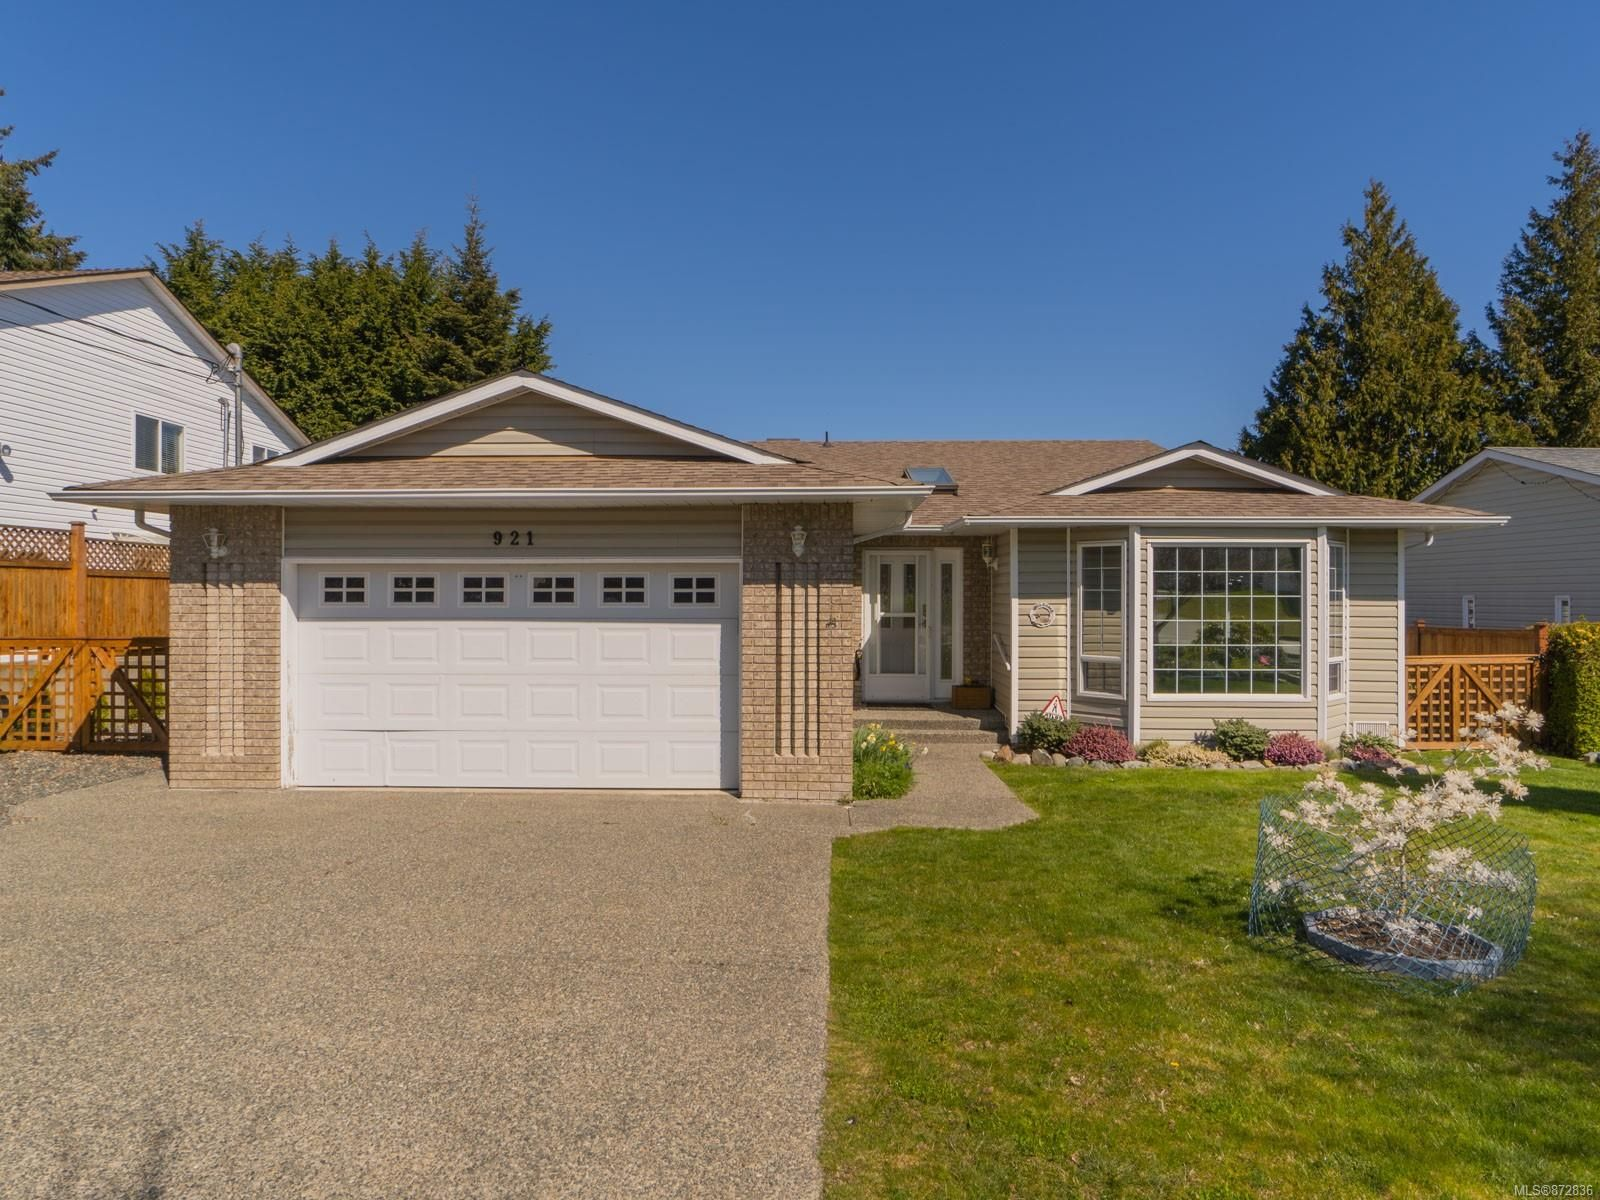 Main Photo: 921 Esslinger Rd in : PQ French Creek House for sale (Parksville/Qualicum)  : MLS®# 872836